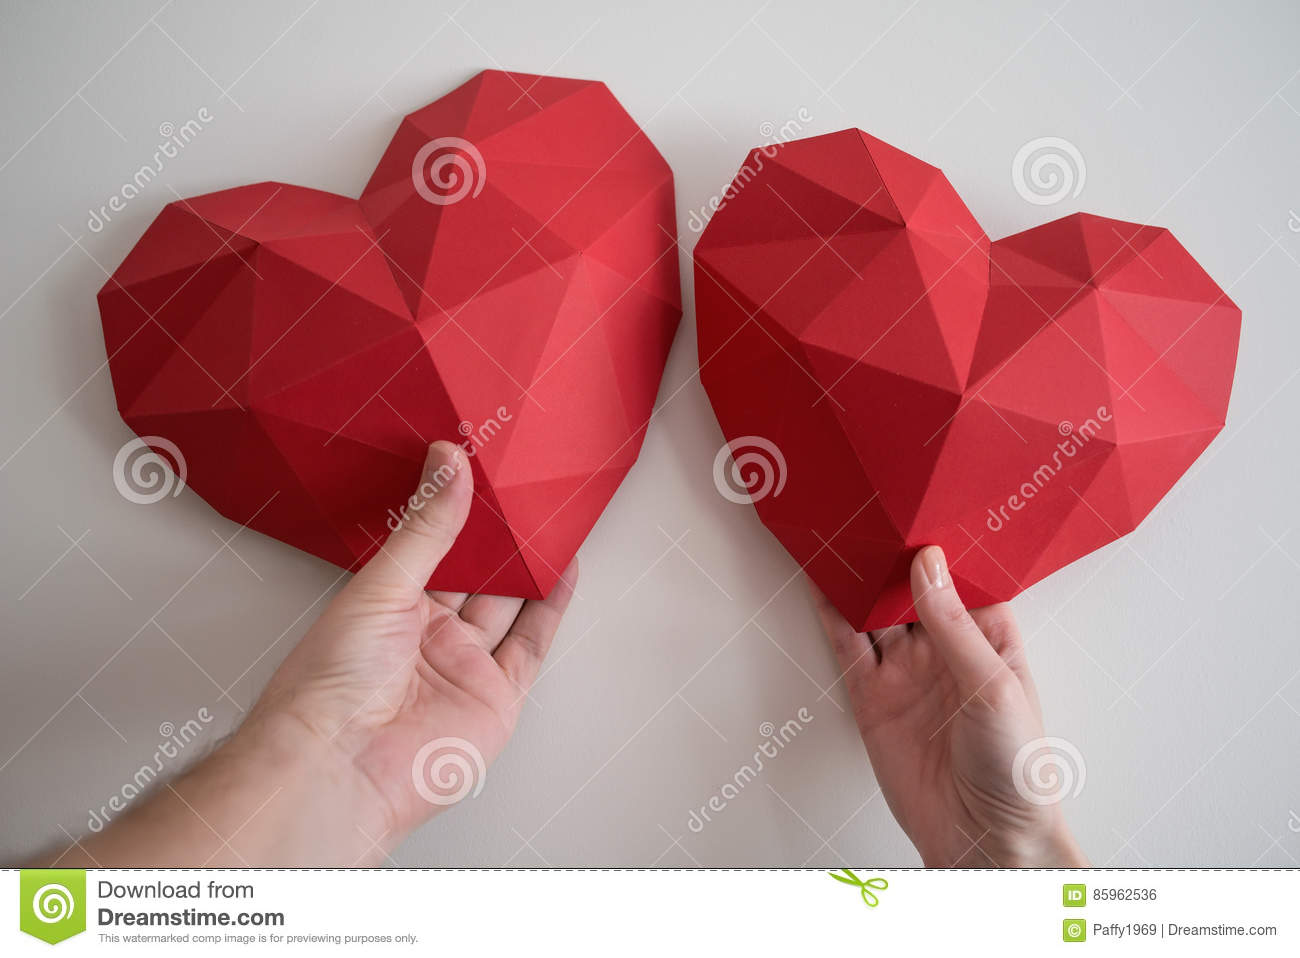 Man and female hands holding red polygonal heart shapes